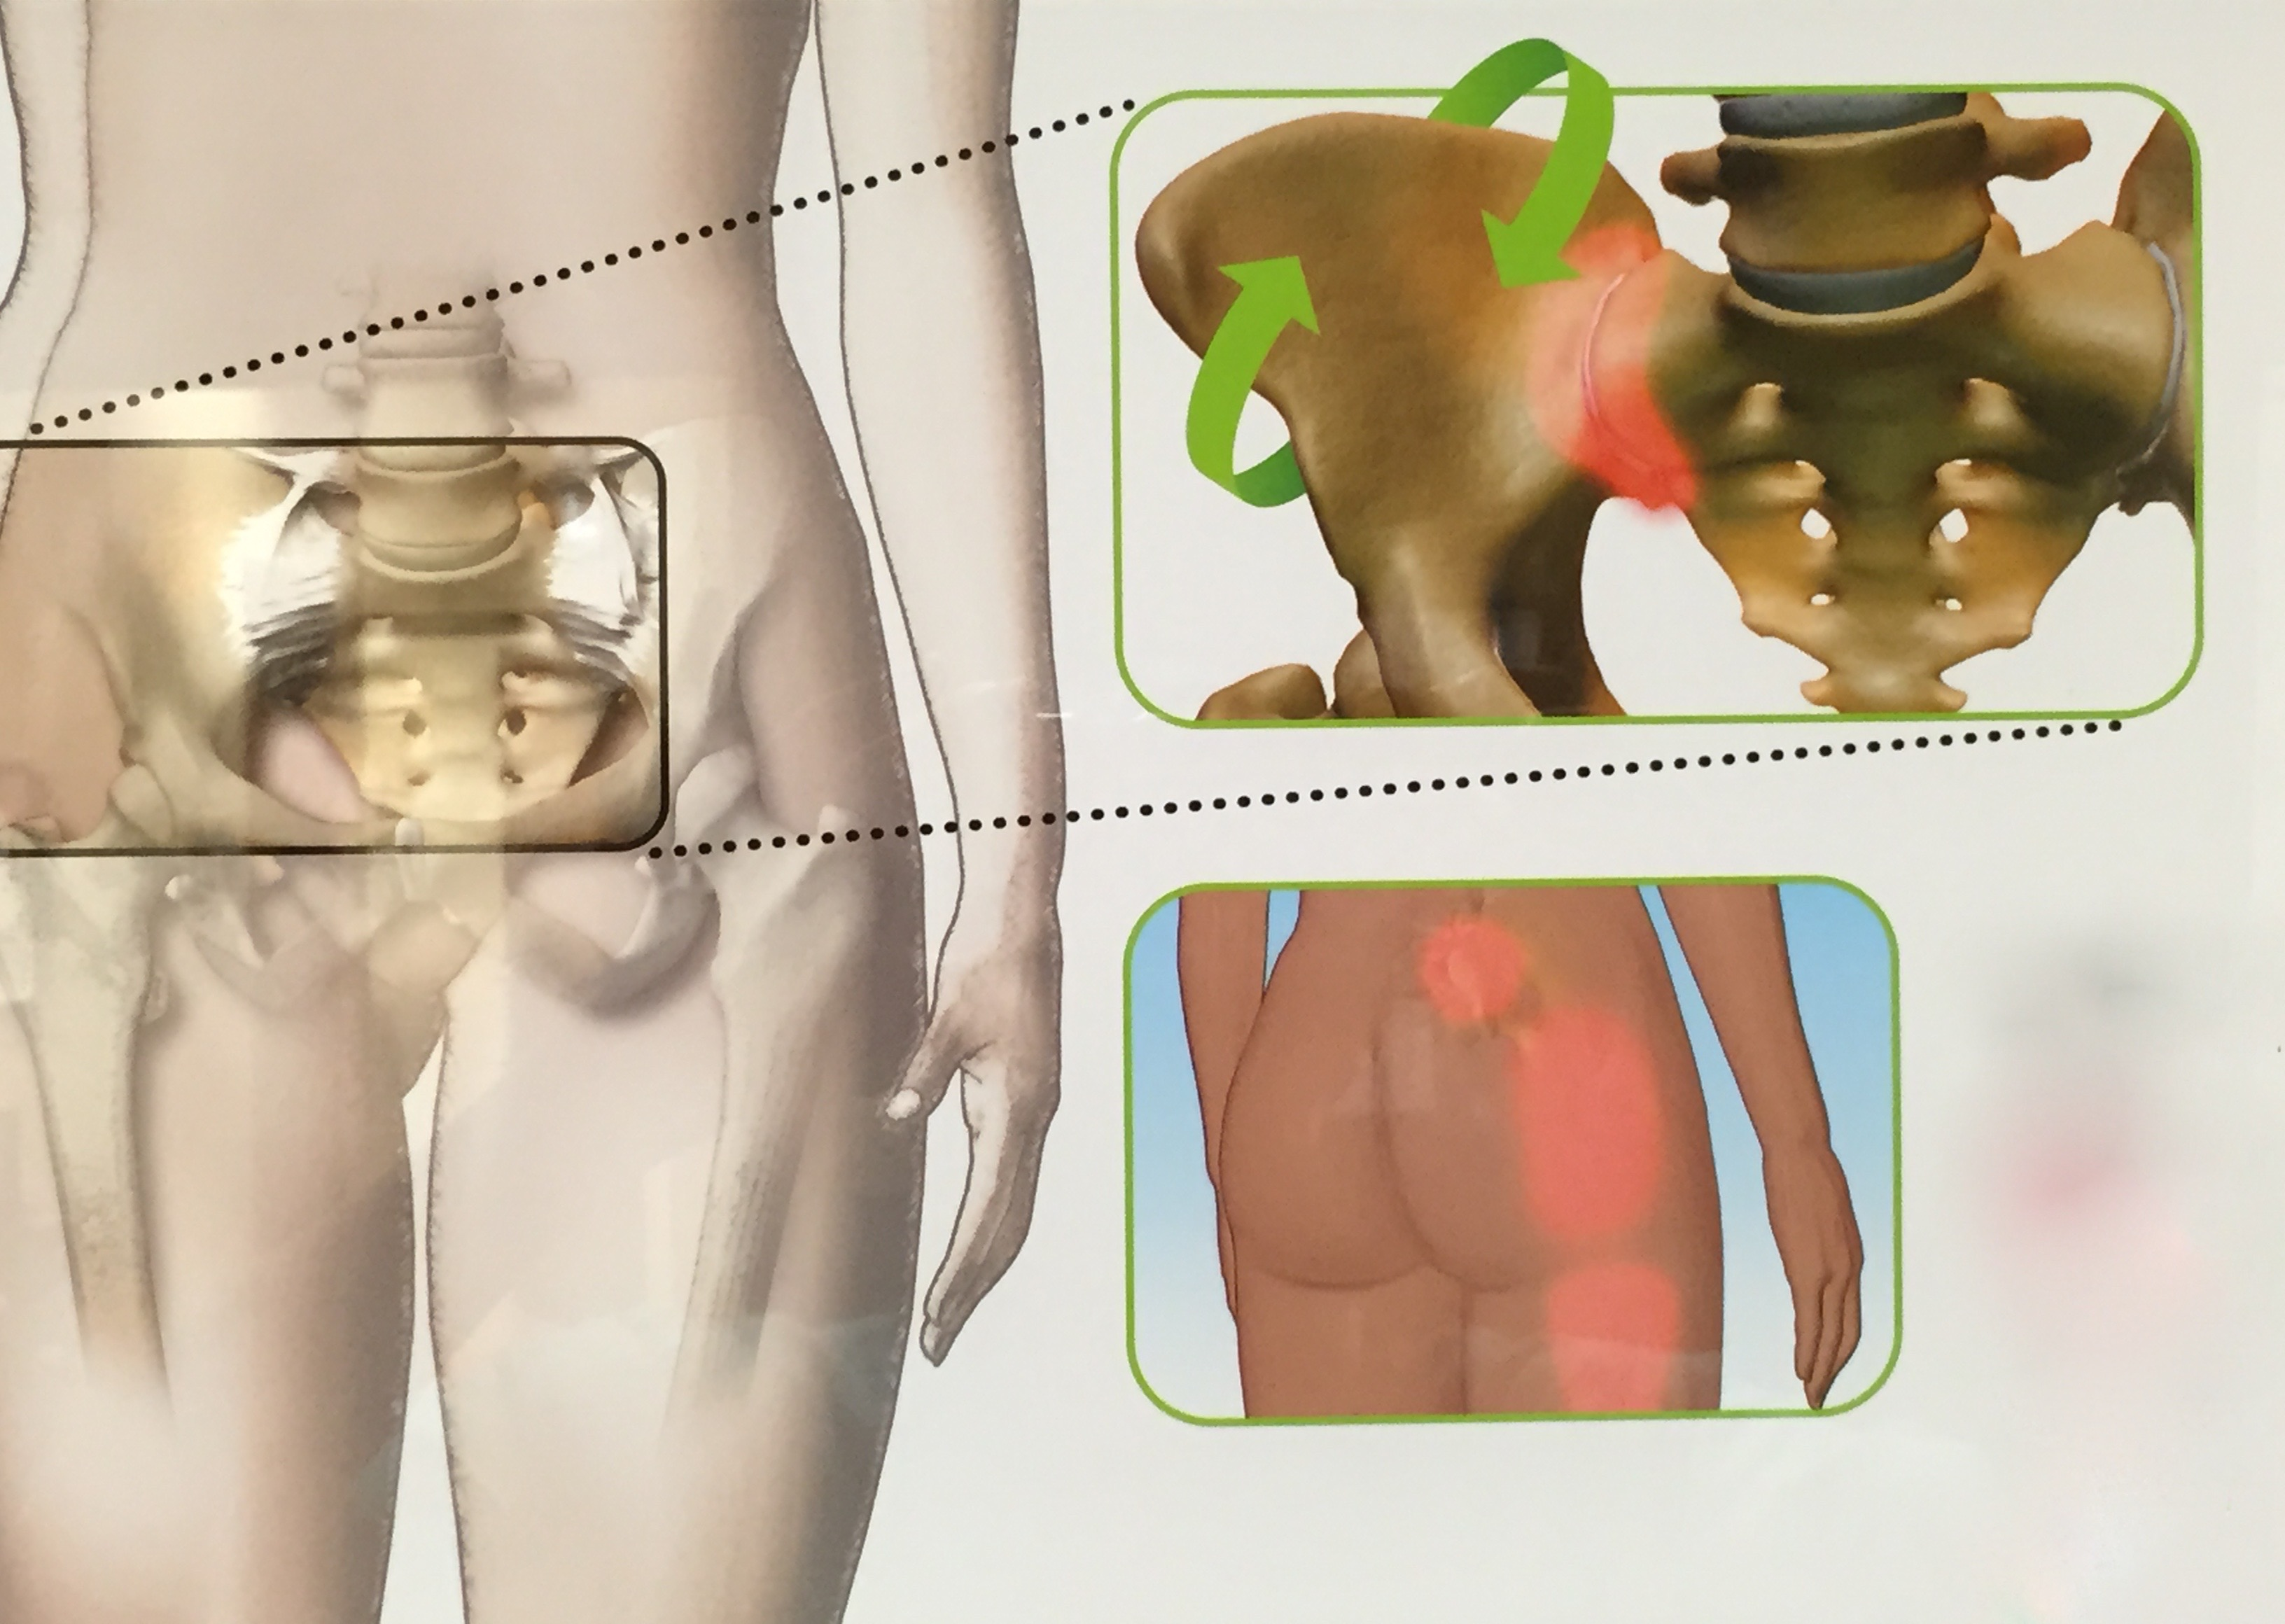 Sacroiliac Si Joint Disorders Spinecare Medical Group